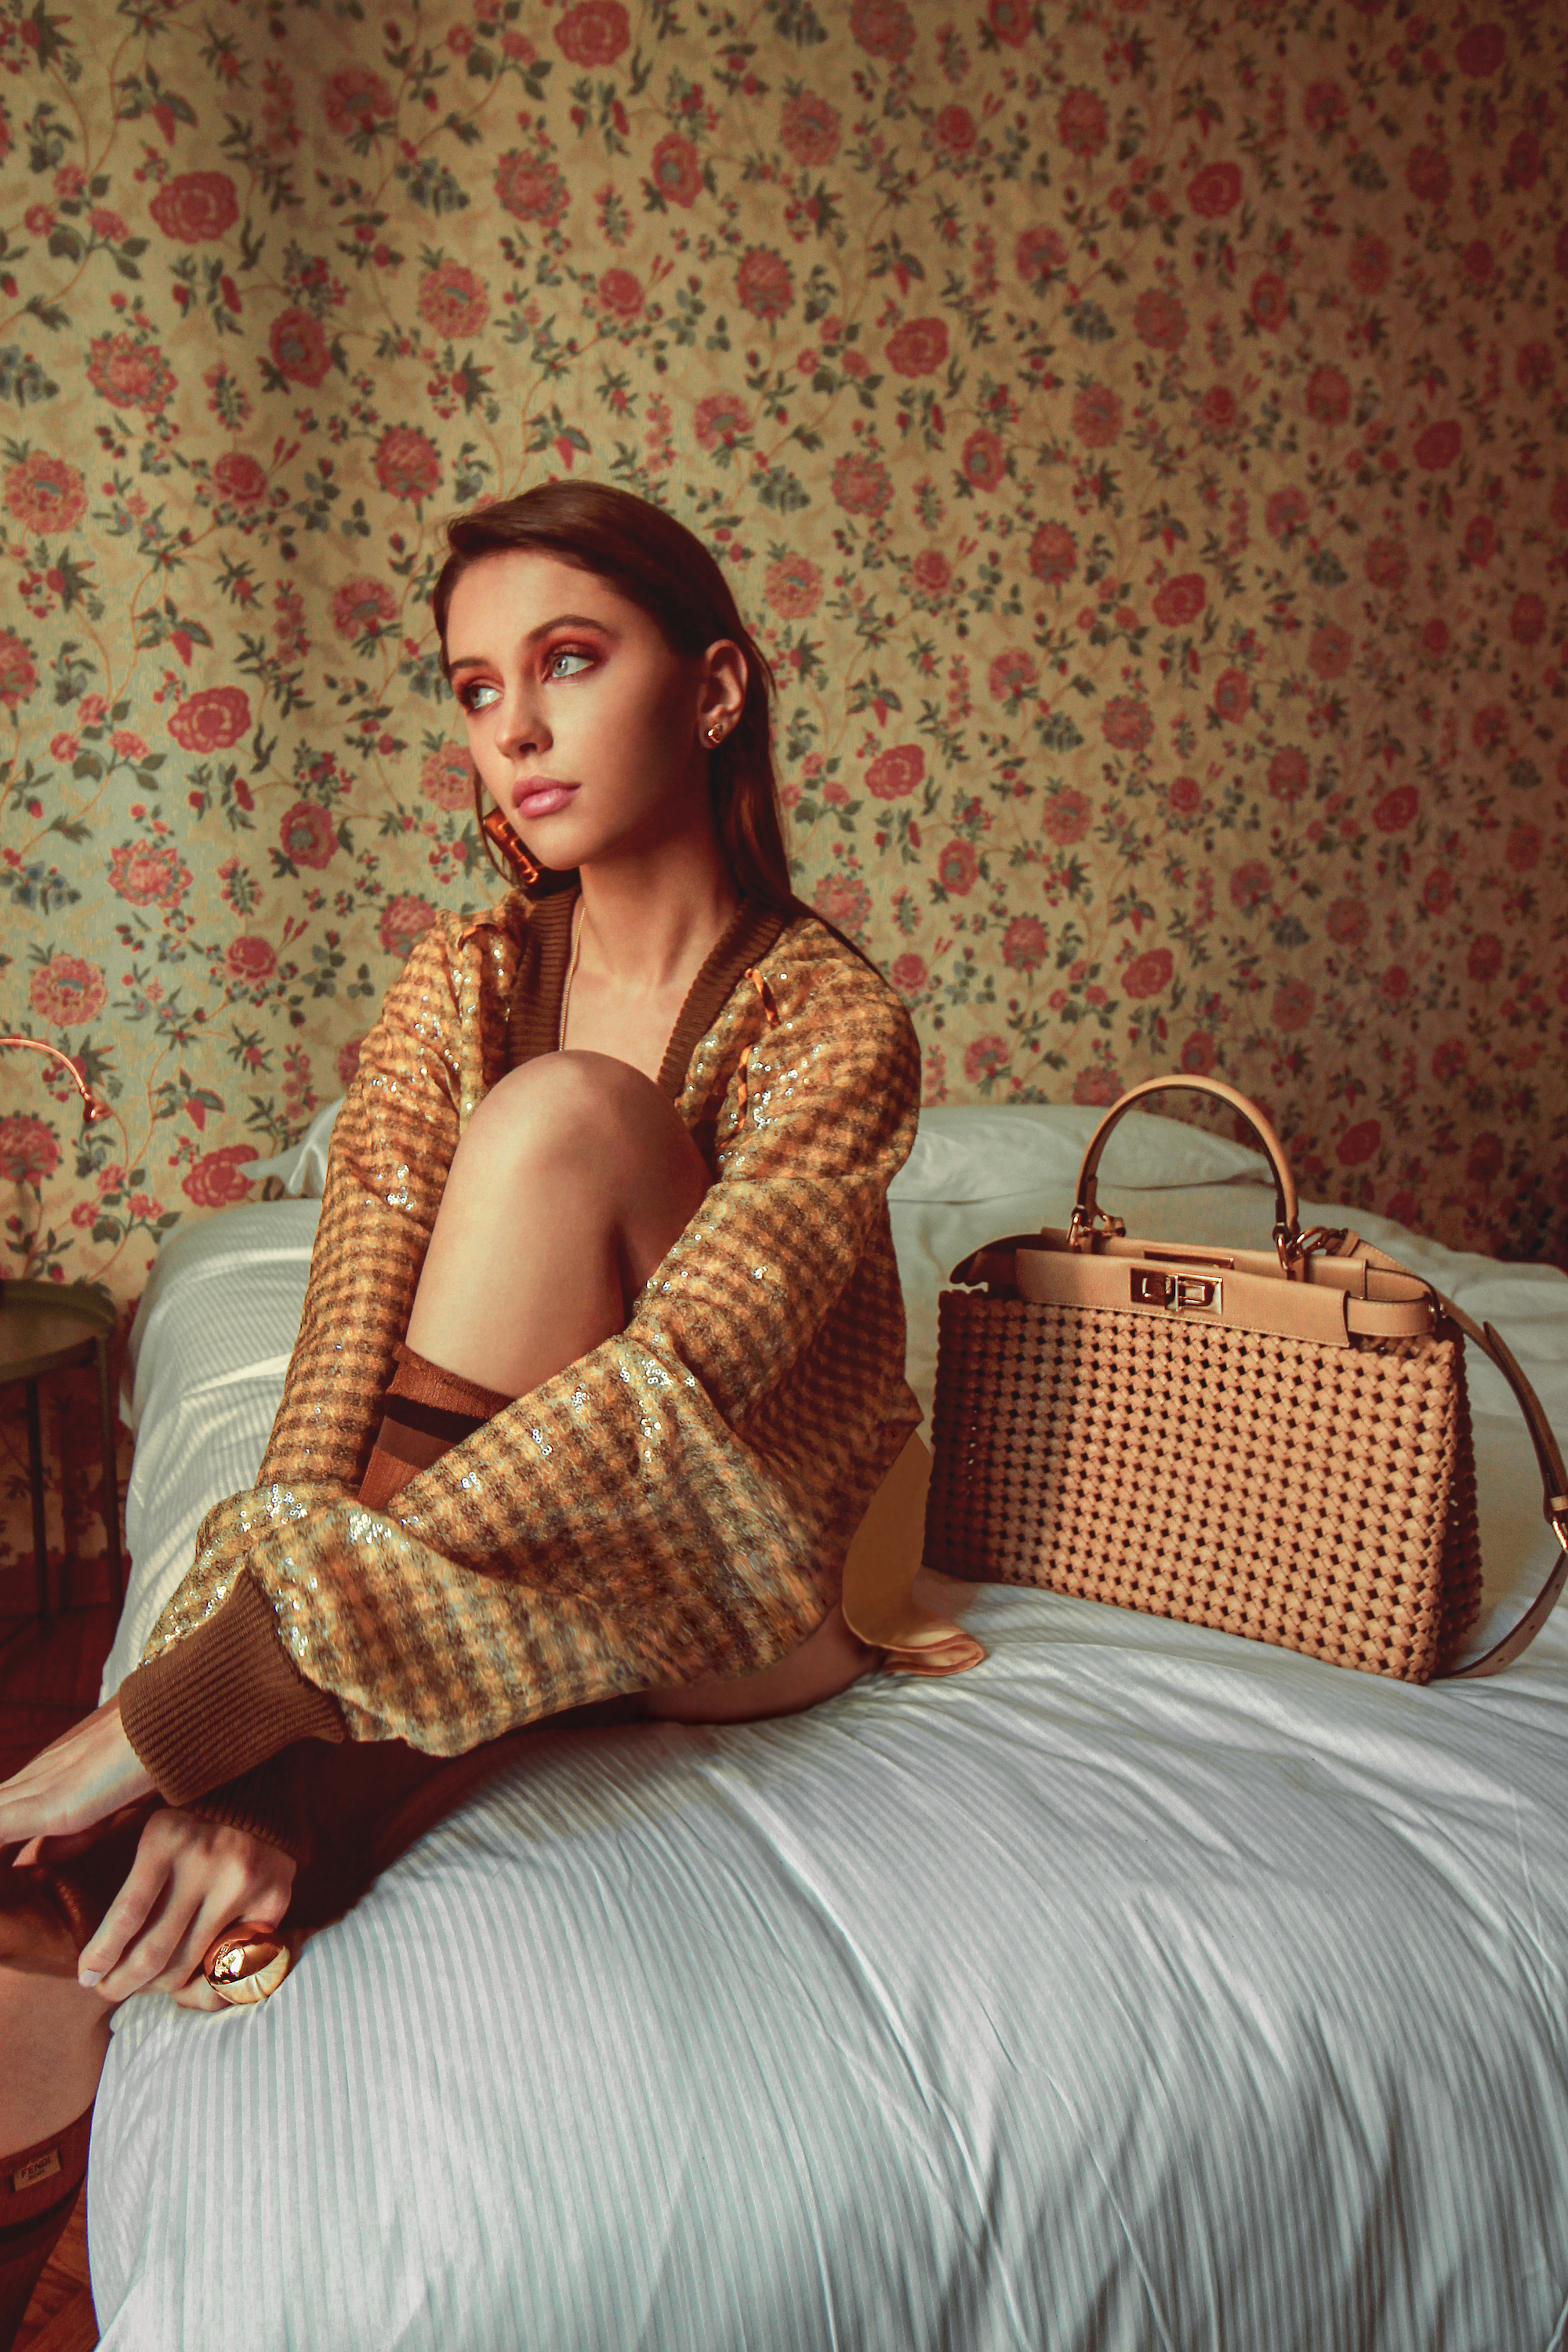 Iris law wearin brown jumper next to fendi bag